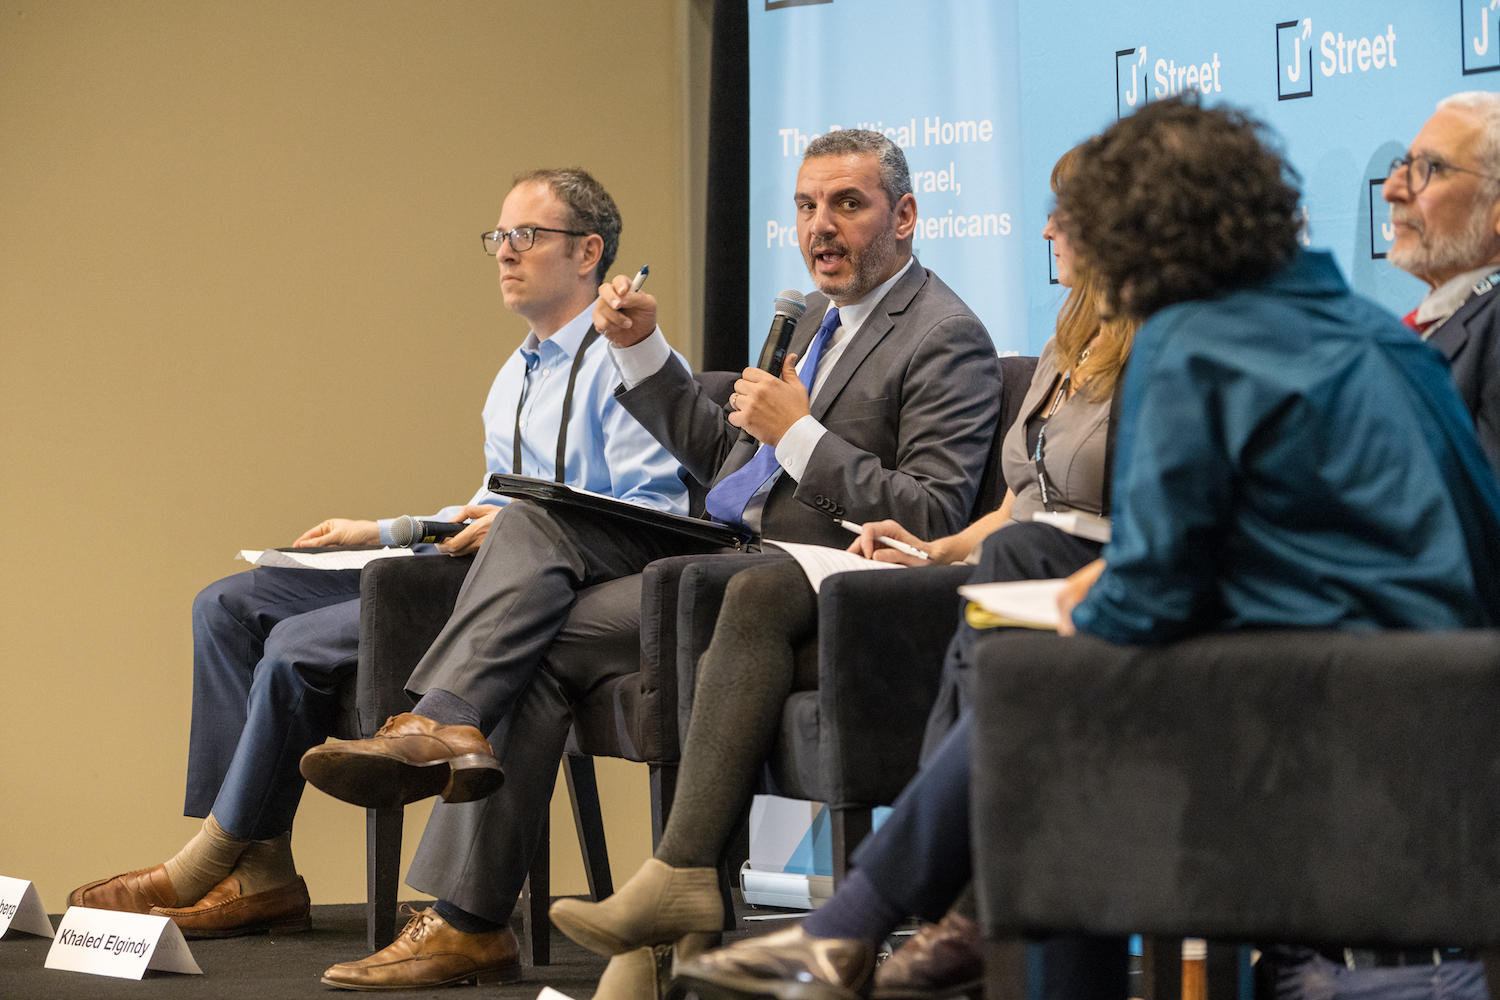 Former Brookings Institution senior fellow Khaled Elgindy speaking at the 2019 J Street National Conference, with Center for a New American Security senior fellow Ilan Goldenberg to his right. October 28, 2019. (J Street)